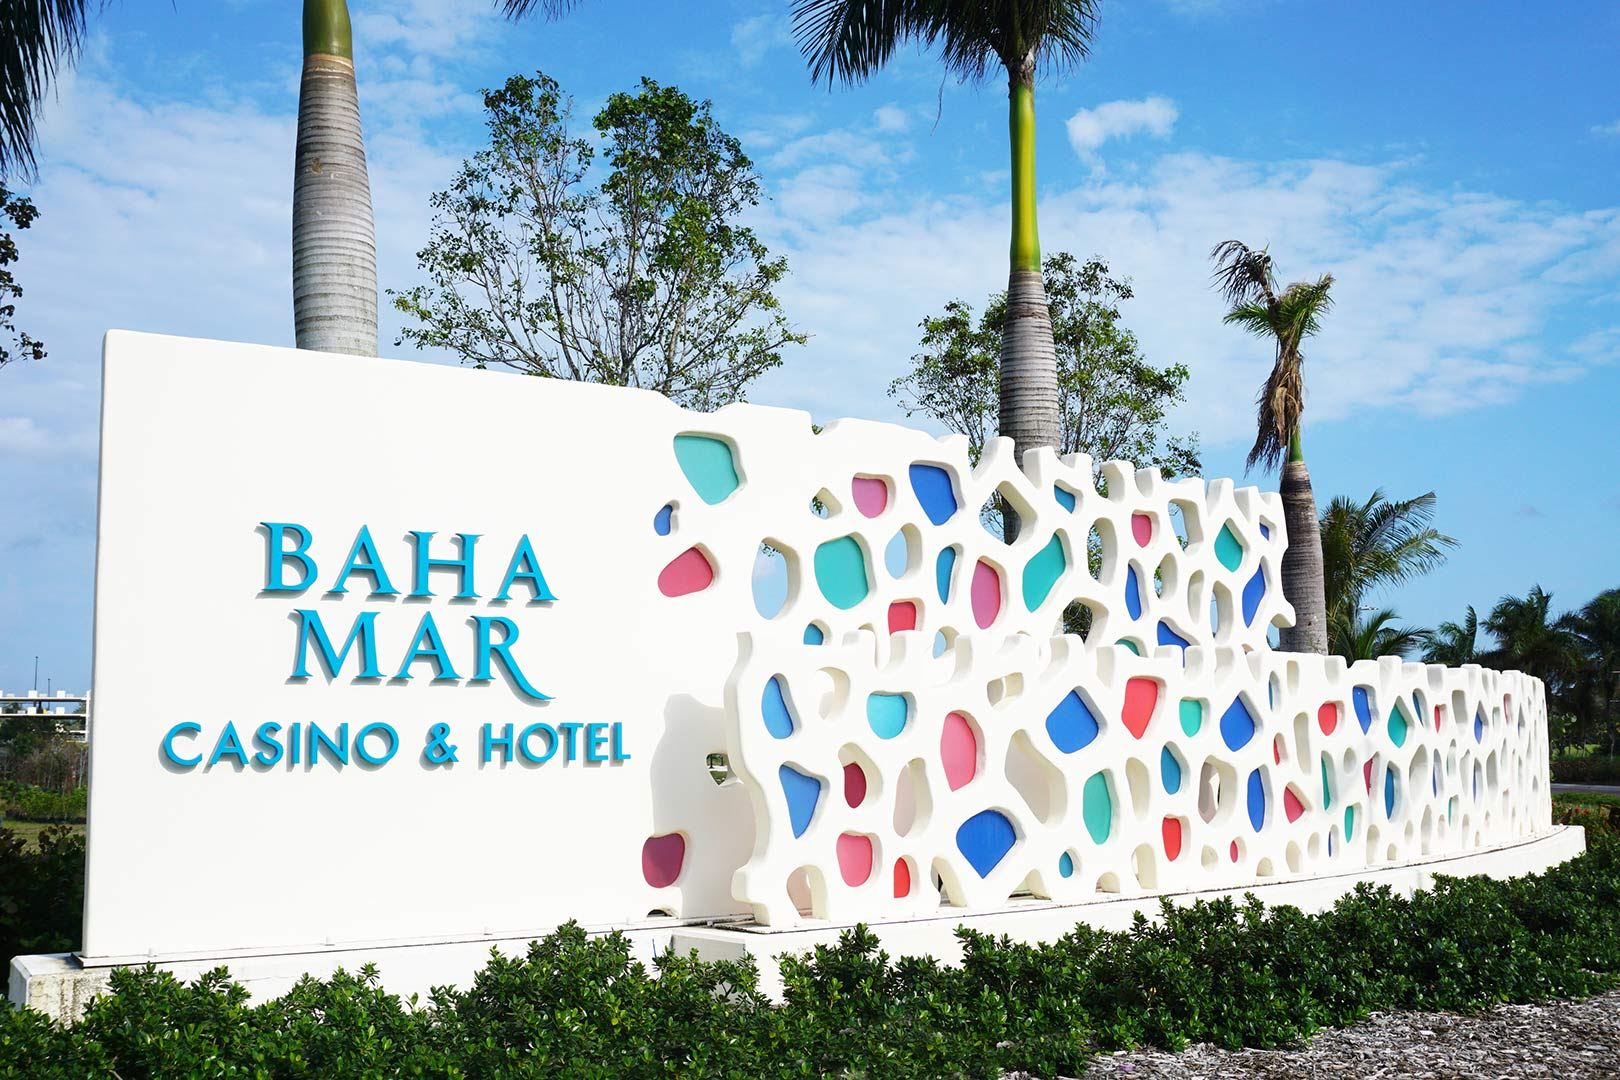 Baha Mar 度假村导视系统设计©Selbert Perkins Design